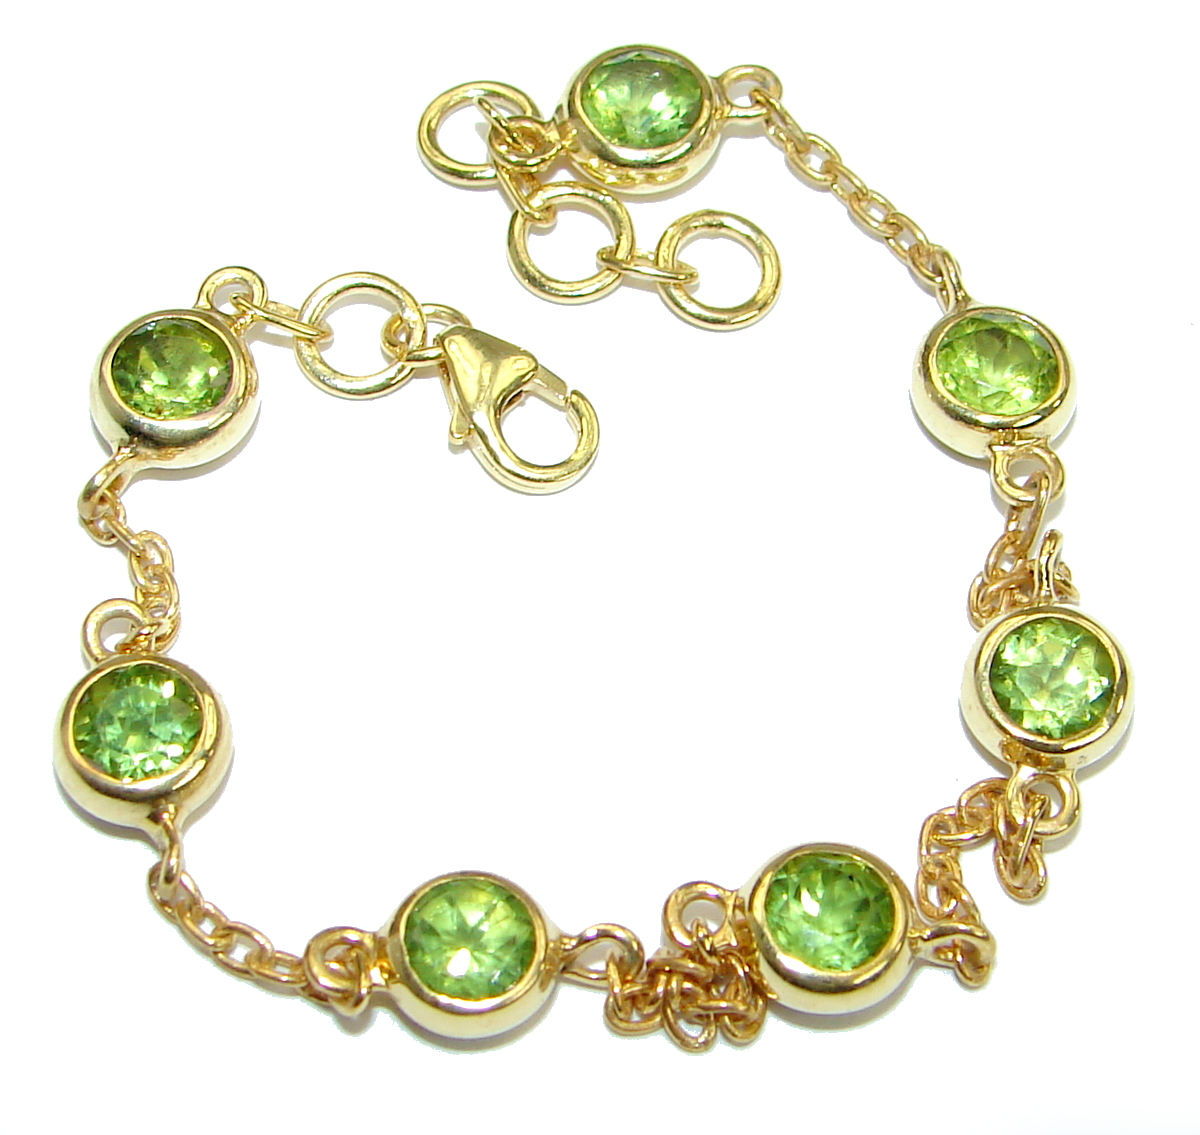 Genuine Green Peridot 14K Gold plated over .925 Sterling Silver handcrafted Bracelet